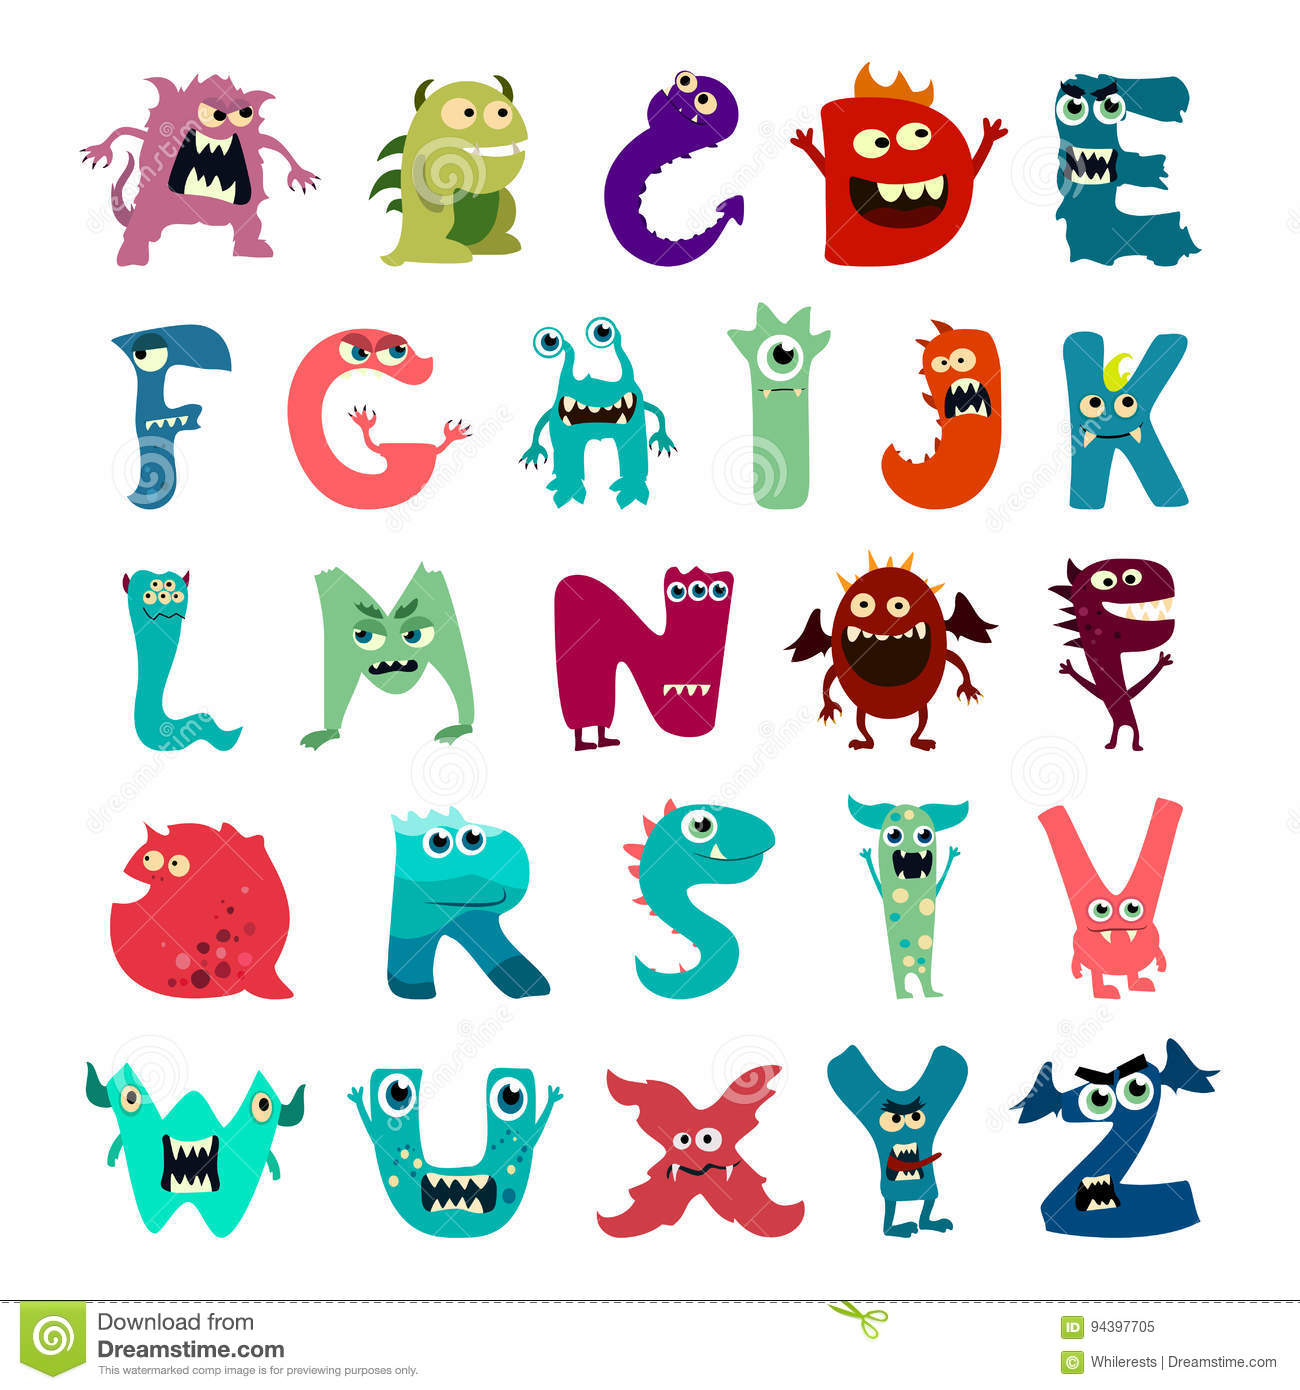 7 Letter Cartoon Characters : Cartoon flat monsters alphabet big set icons colorful